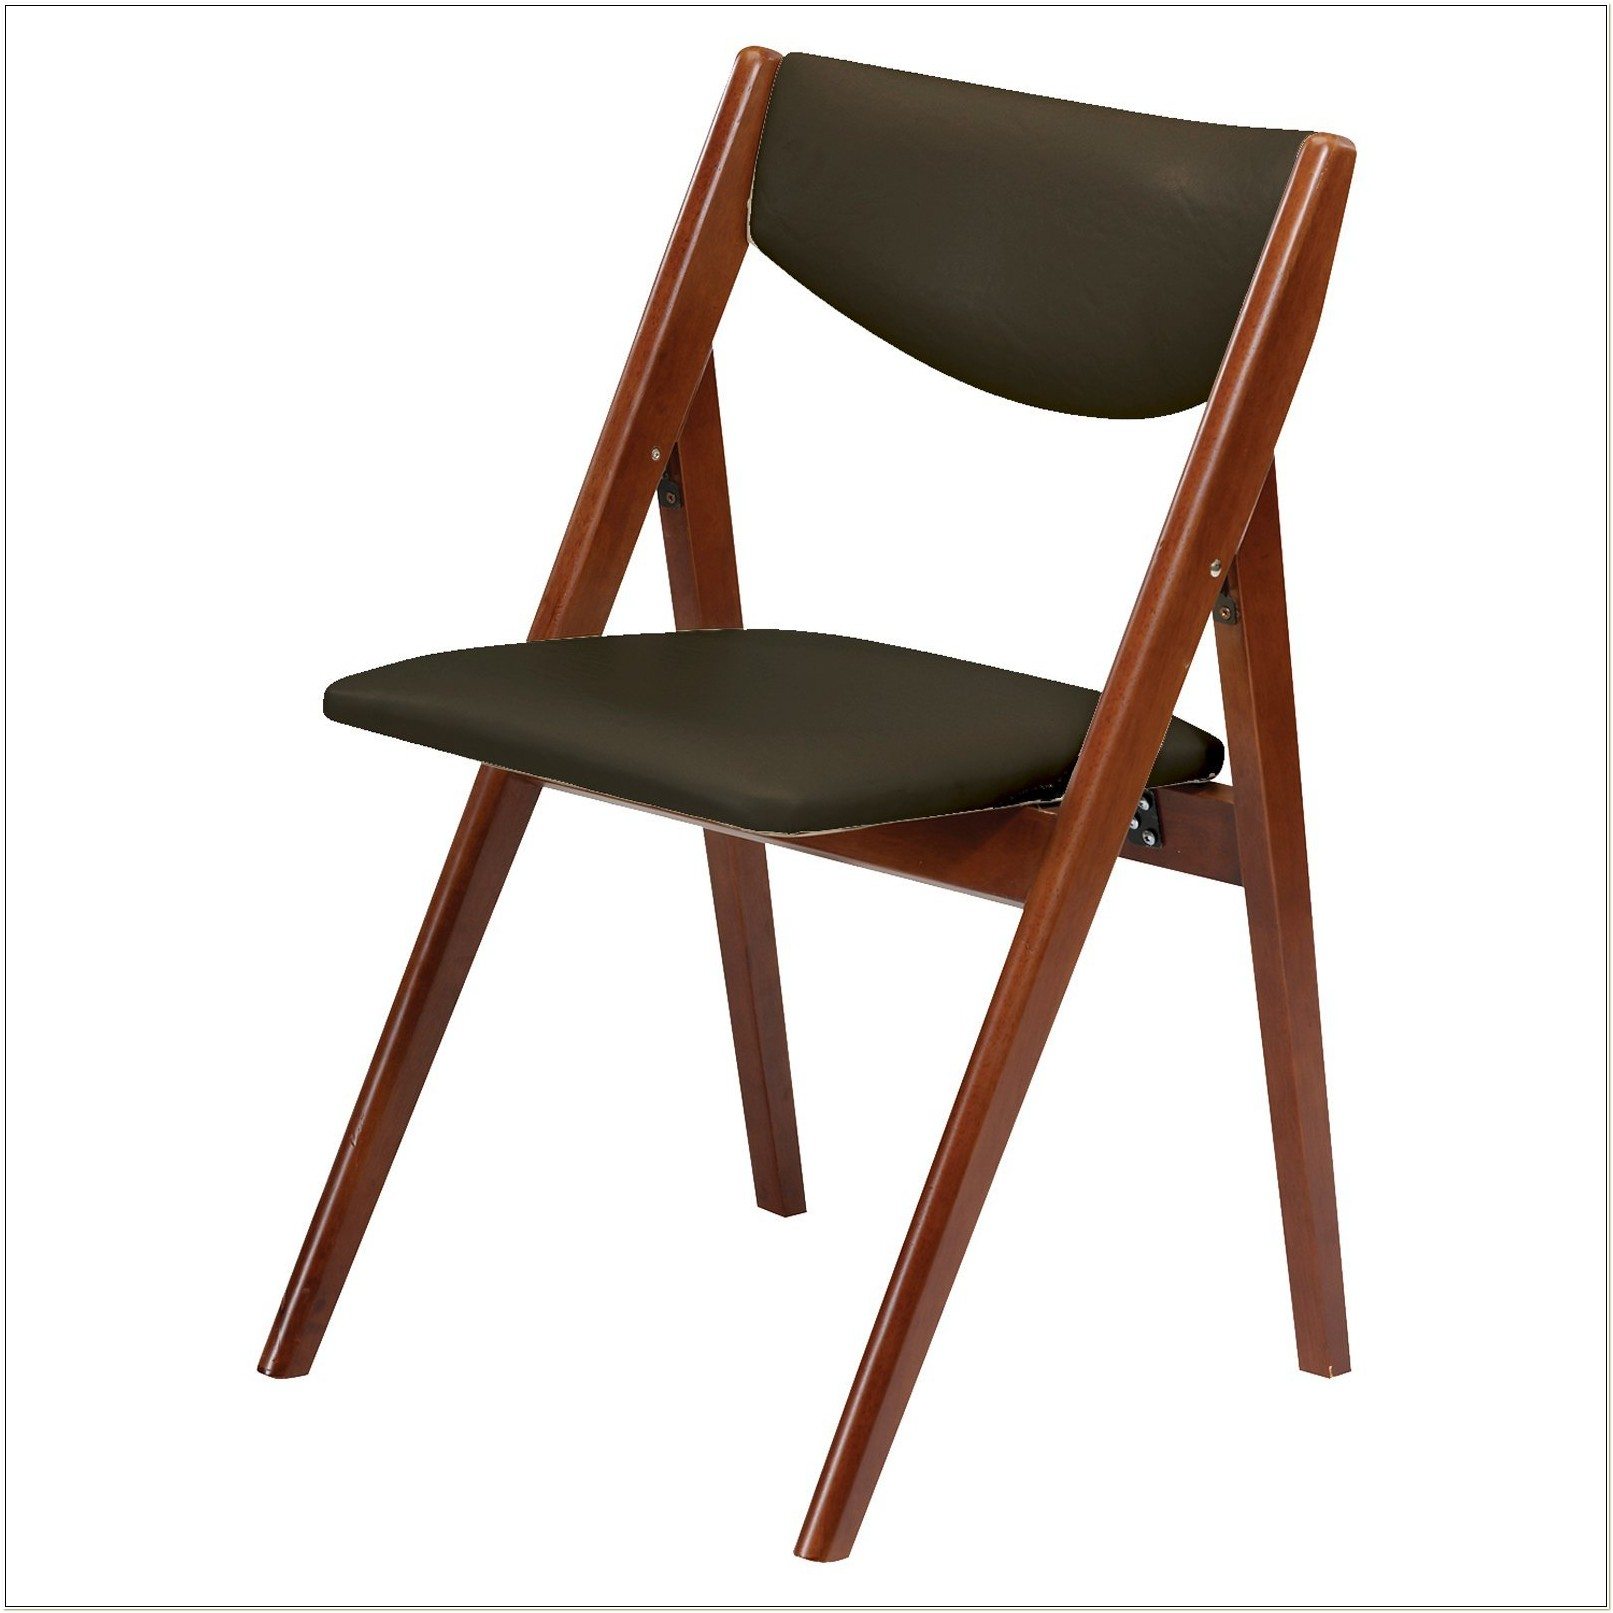 Stakmore Schoolhouse Wood Folding Chair